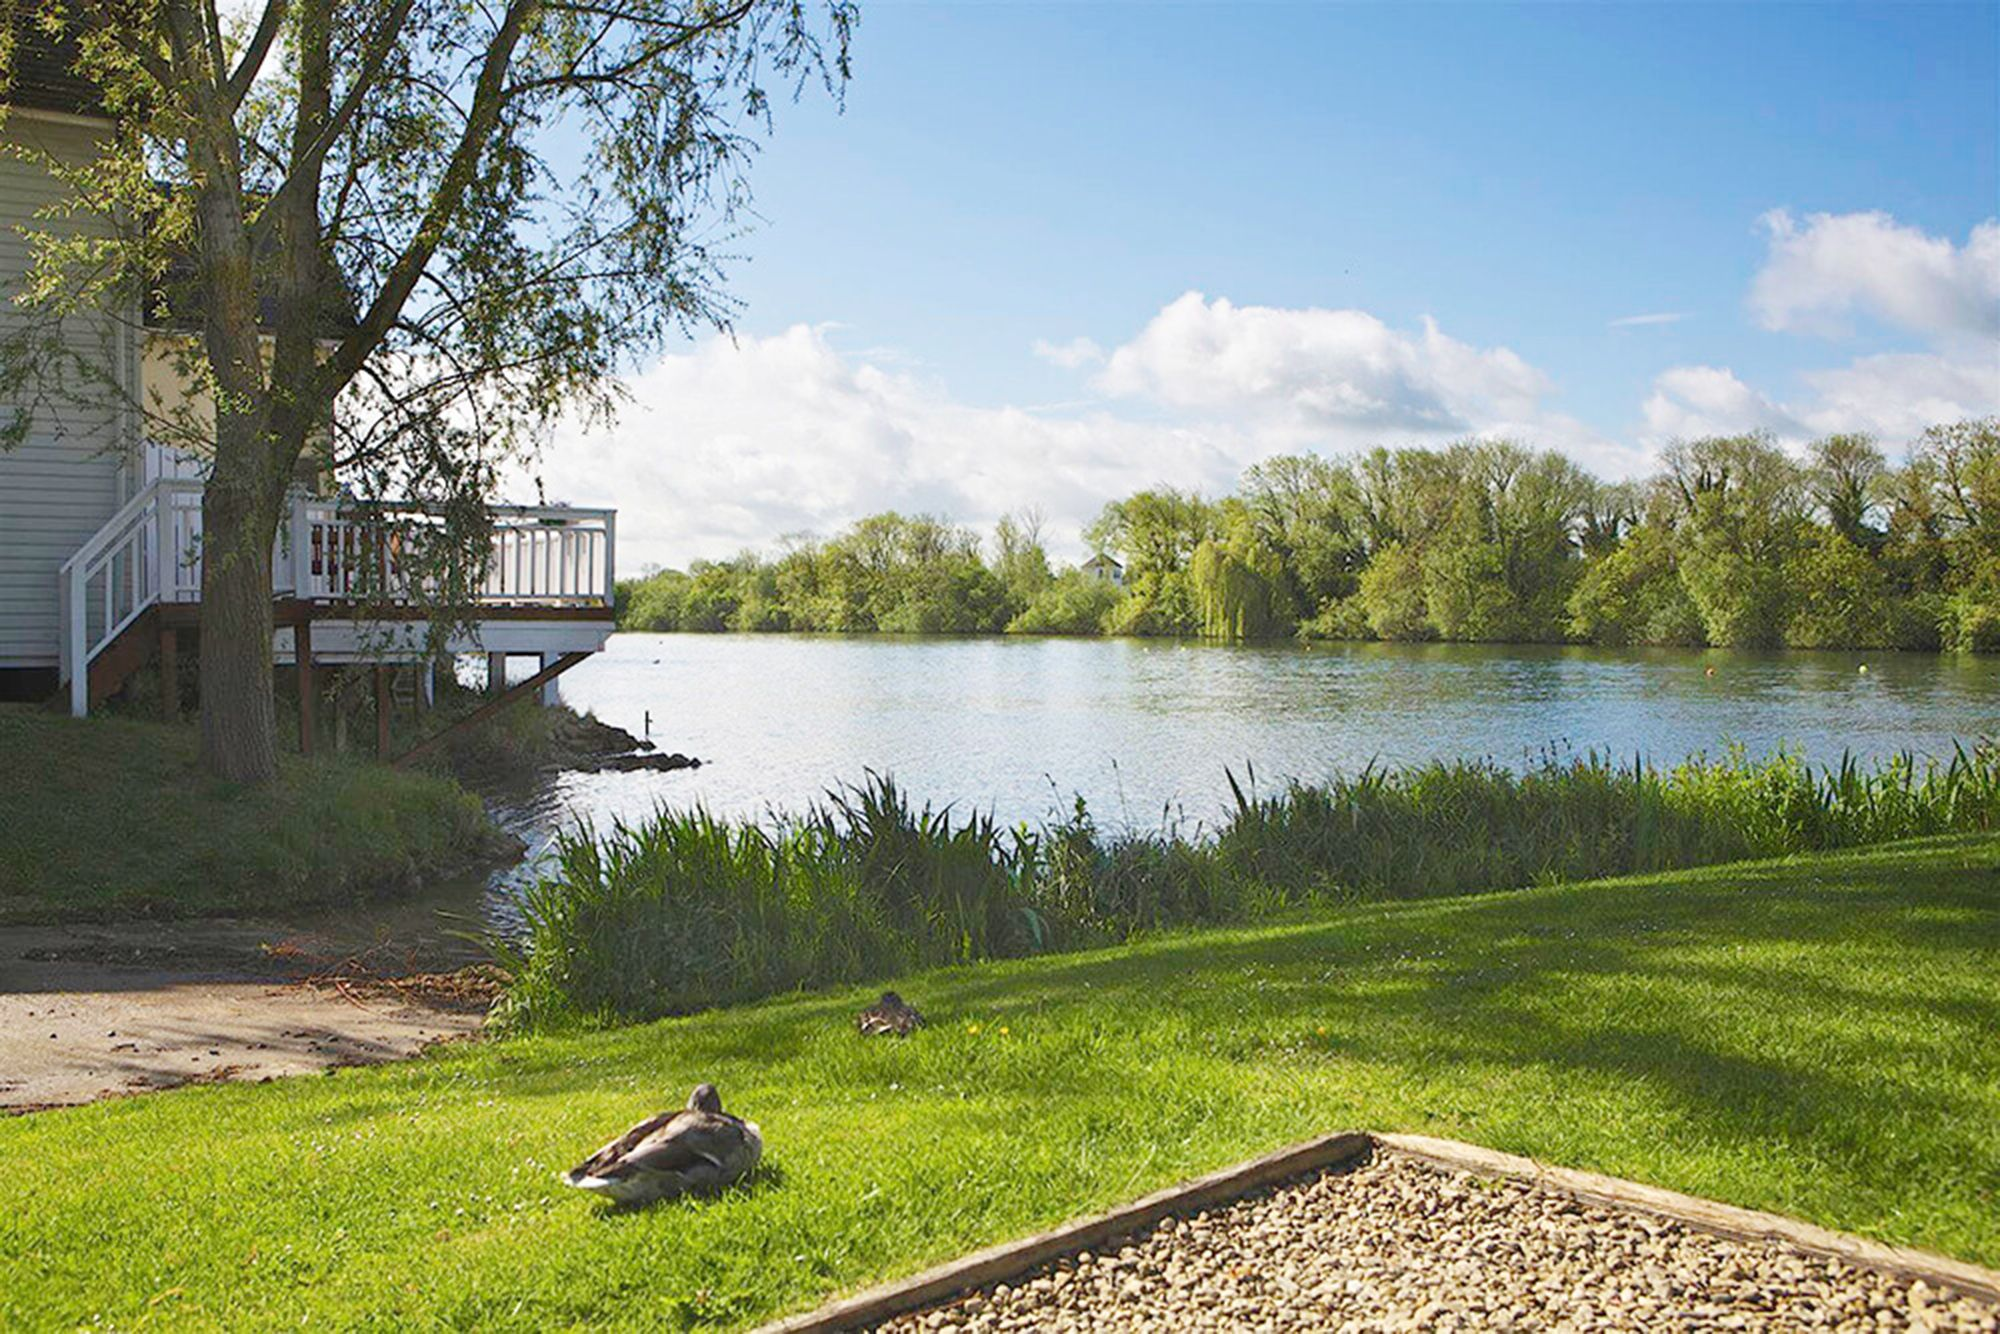 The lodge has prime position in the Water Park with stunning views across Spring Lake